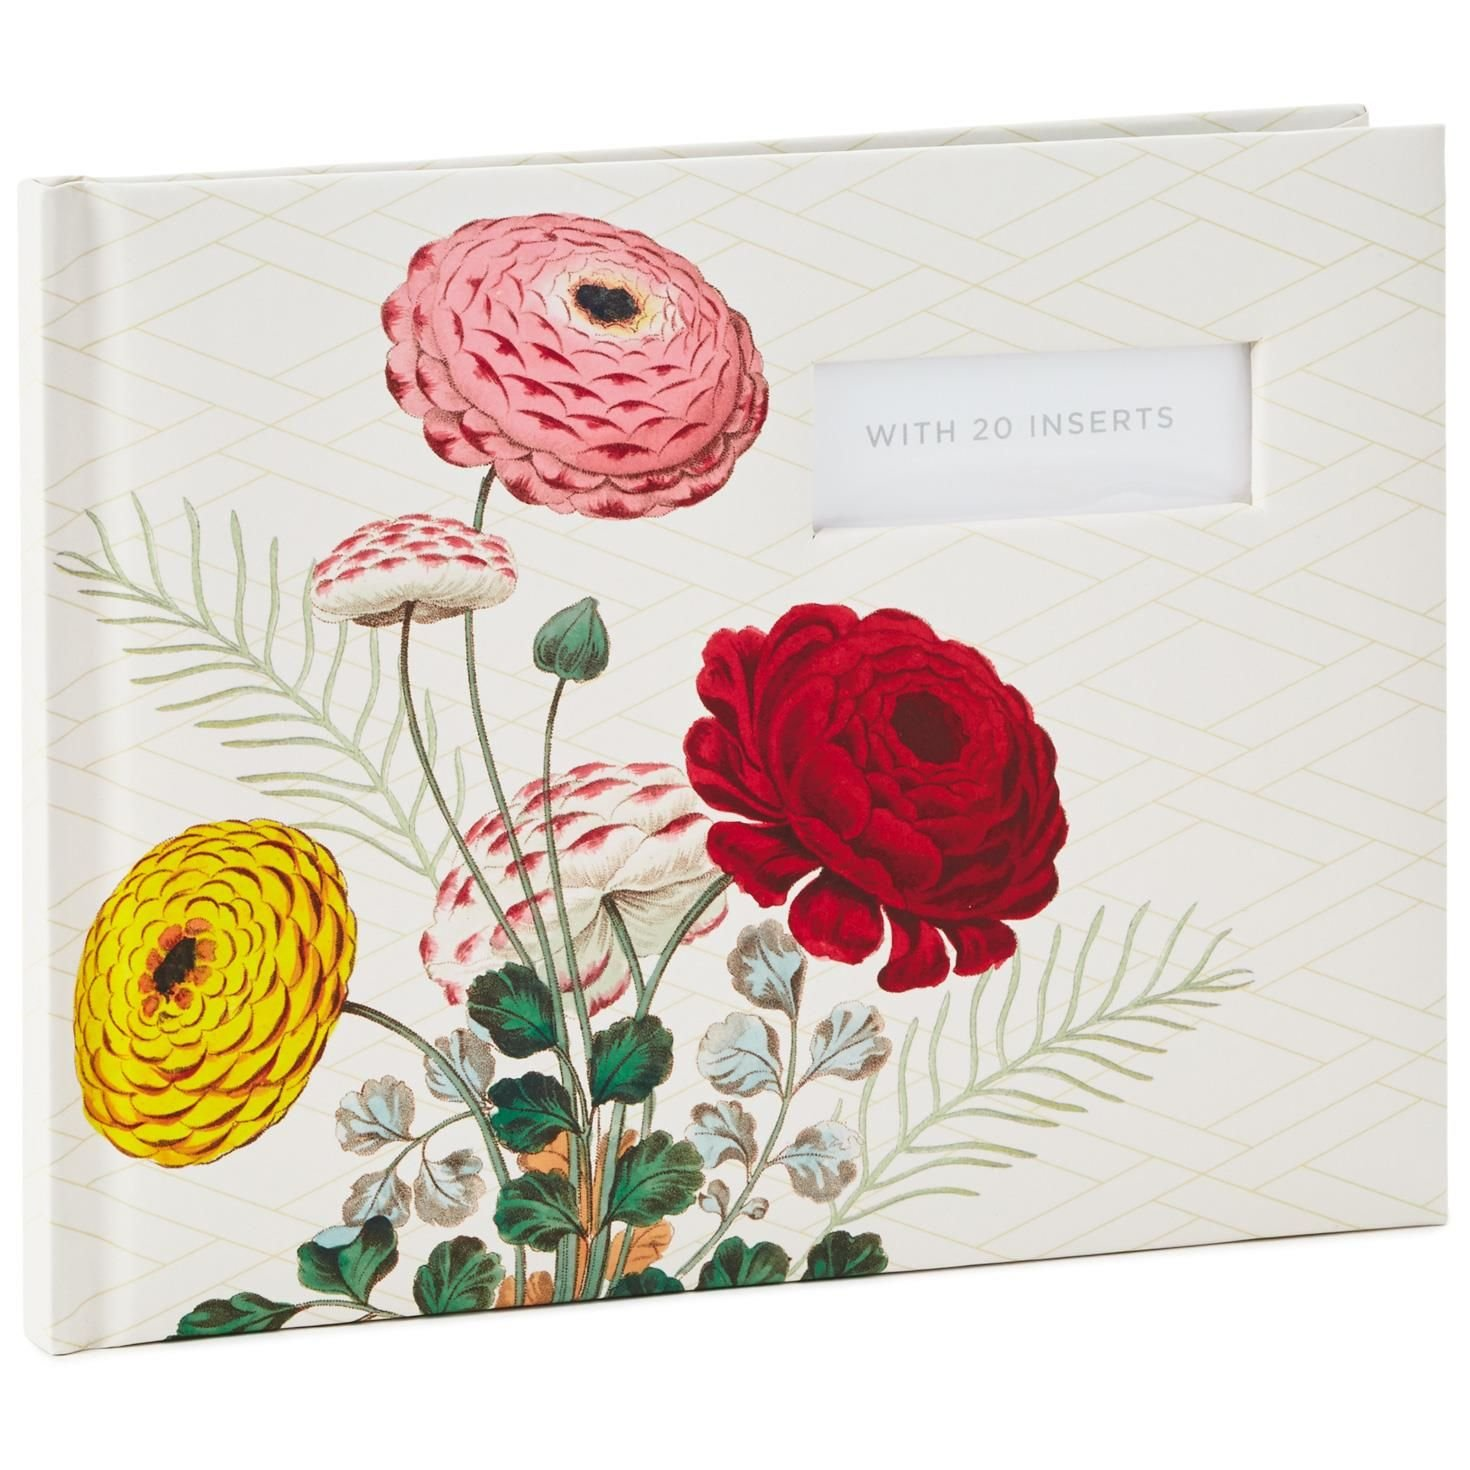 Hallmark Ranunculus Floral Botanical Guest Book Guest Books Animals & Nature